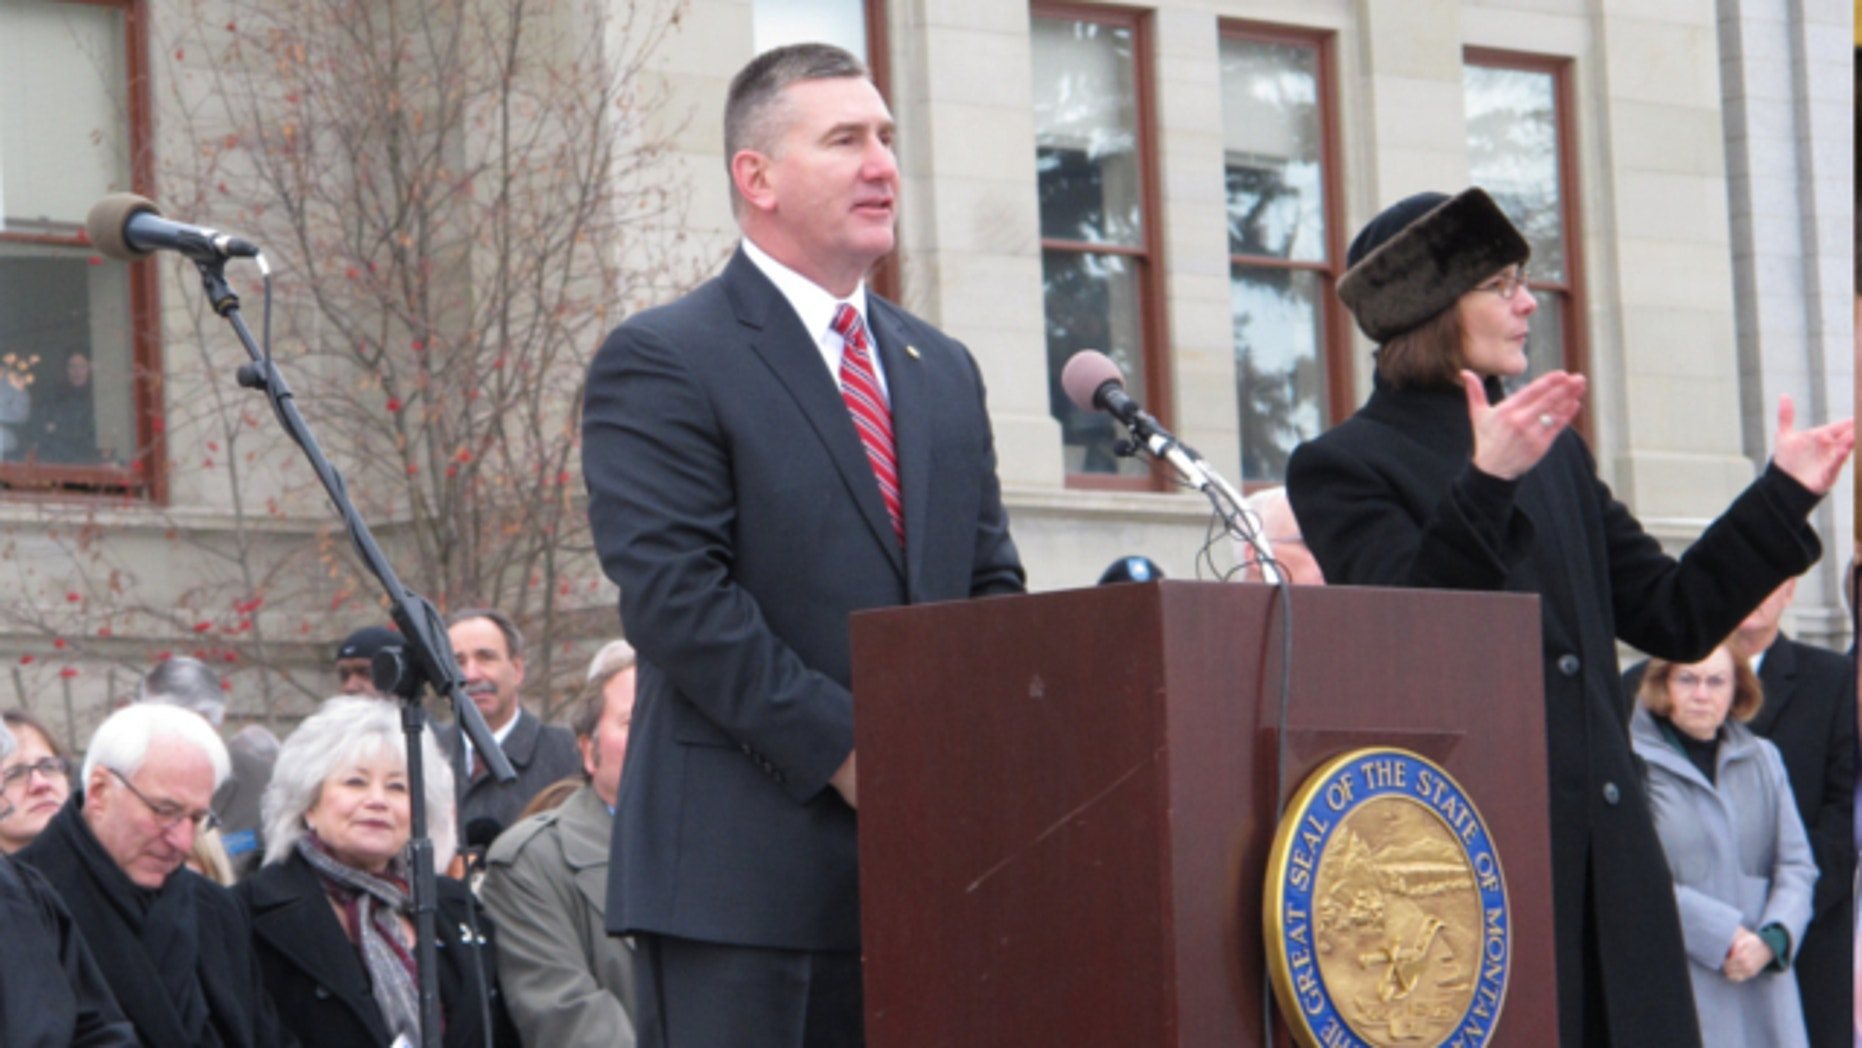 FILE: Jan. 7, 2013: Montana Lt. Gov. John Walsh announced his candidacy for the U.S. Senate seat being vacated by Max Baucus after next year.